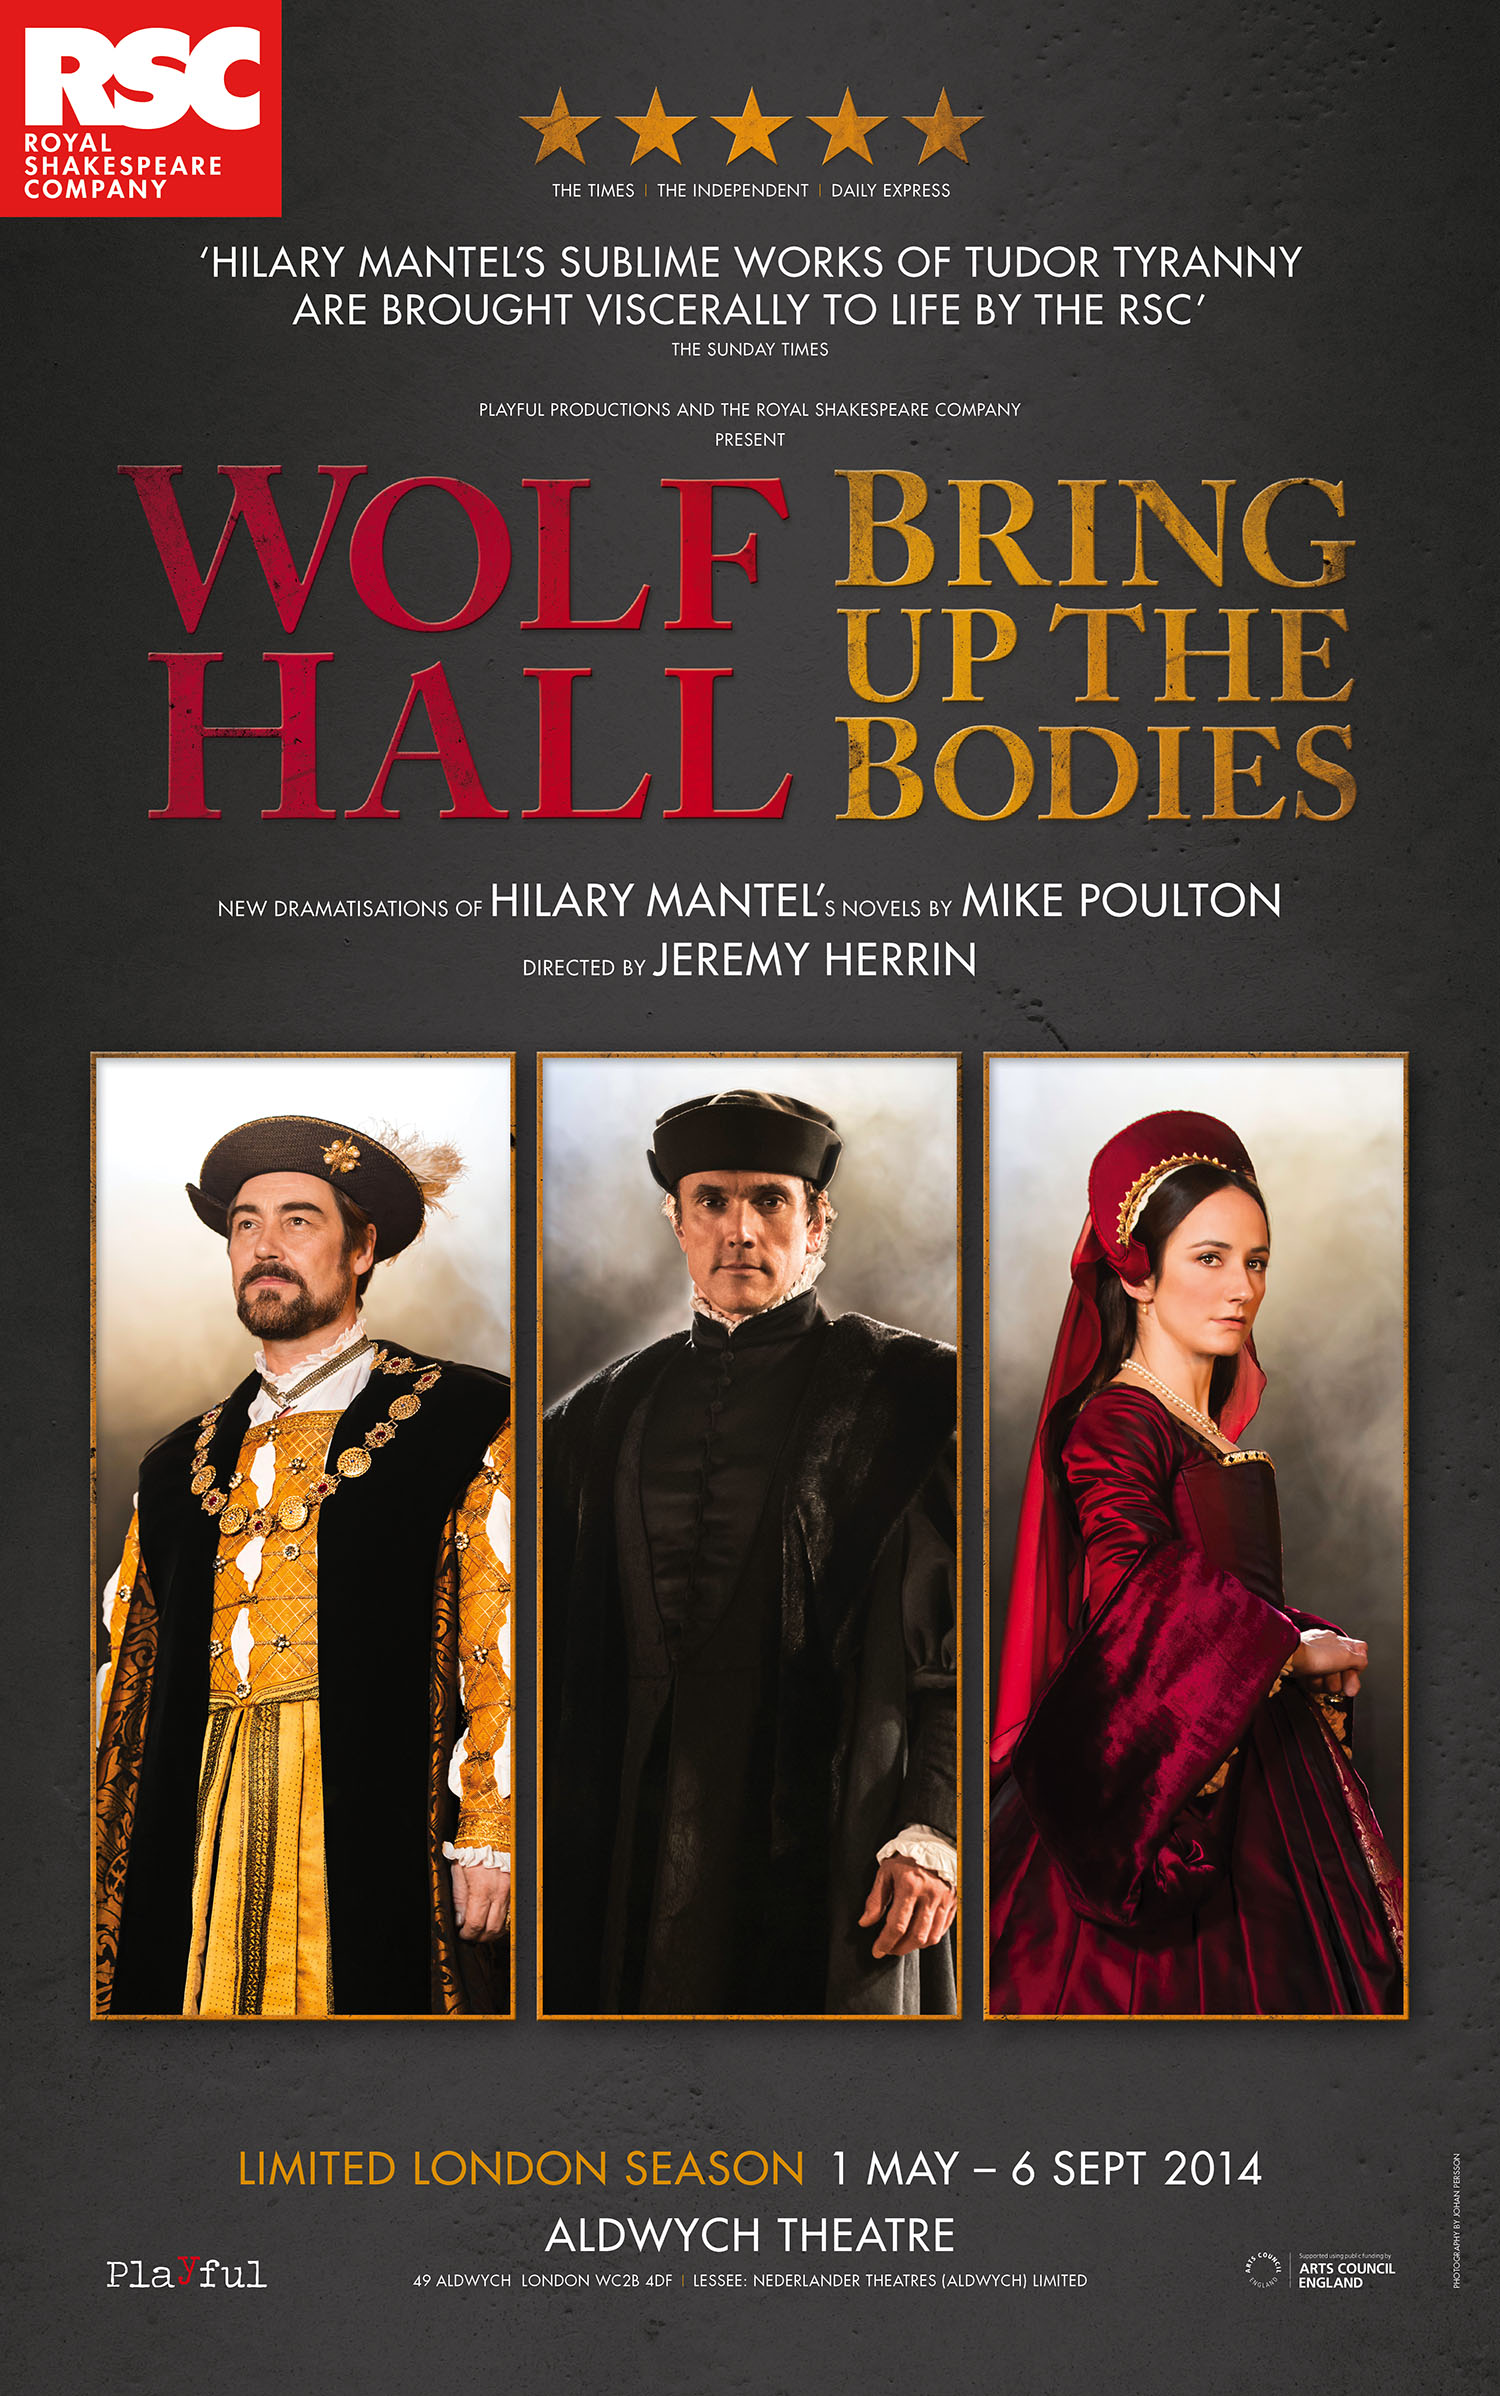 Wolf Hall Bring Up the Bodies